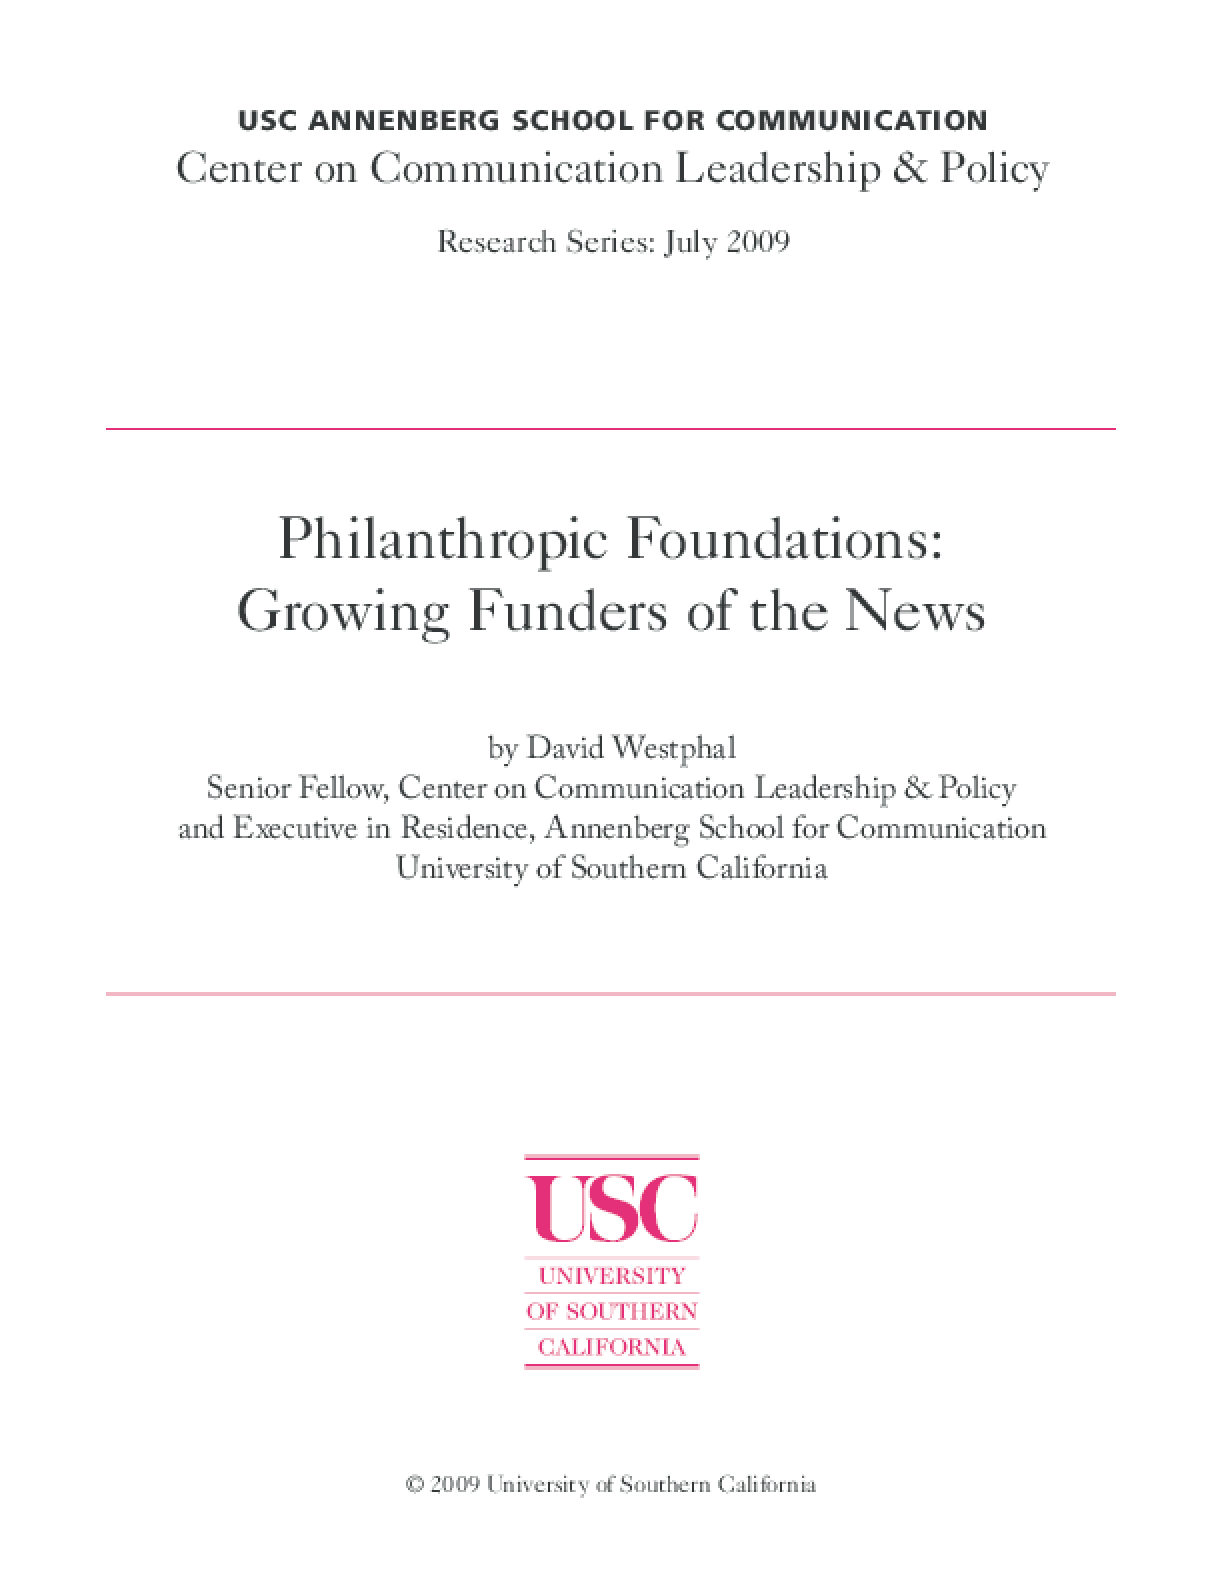 Philanthropic Foundations: Growing Funders of the News